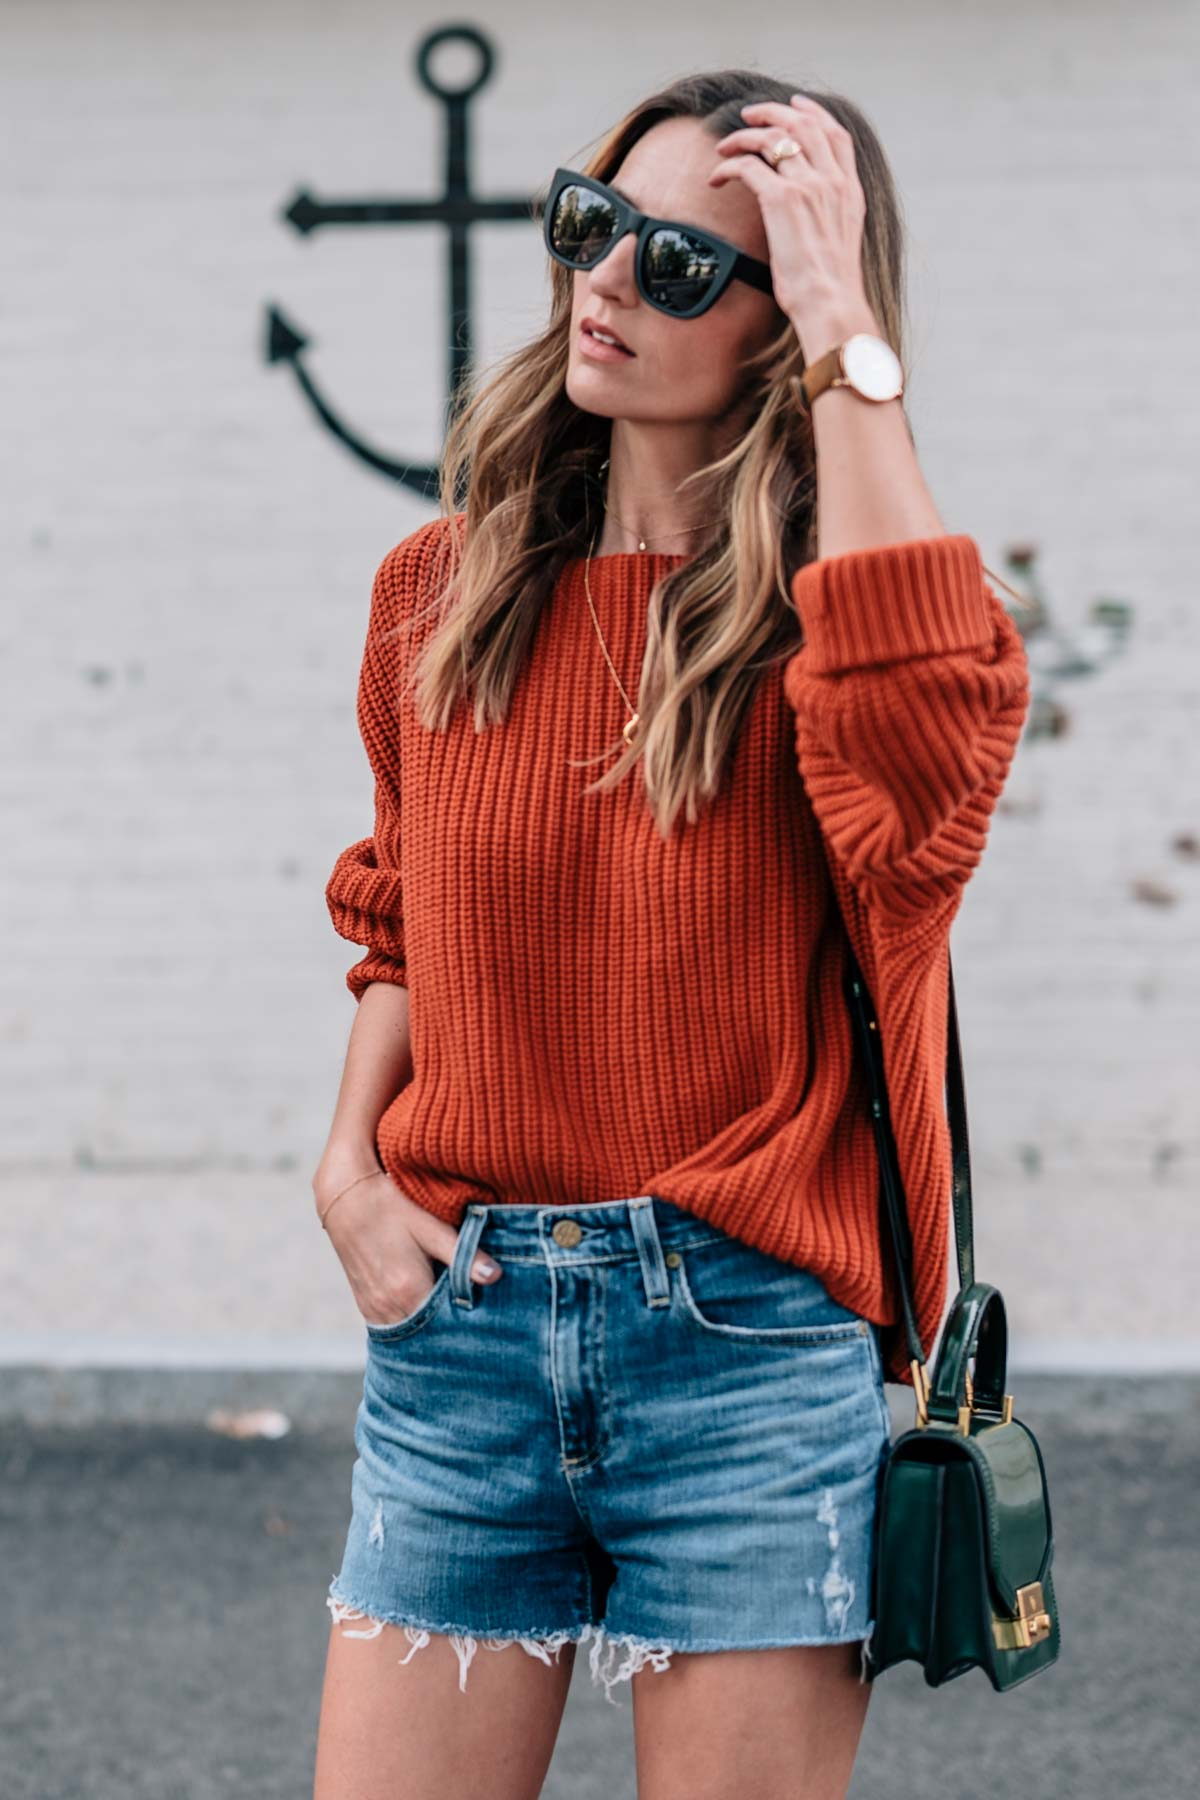 Jess Ann Kirby's fall style in a chunky knit sweater in pantone autumn maple and jean shorts